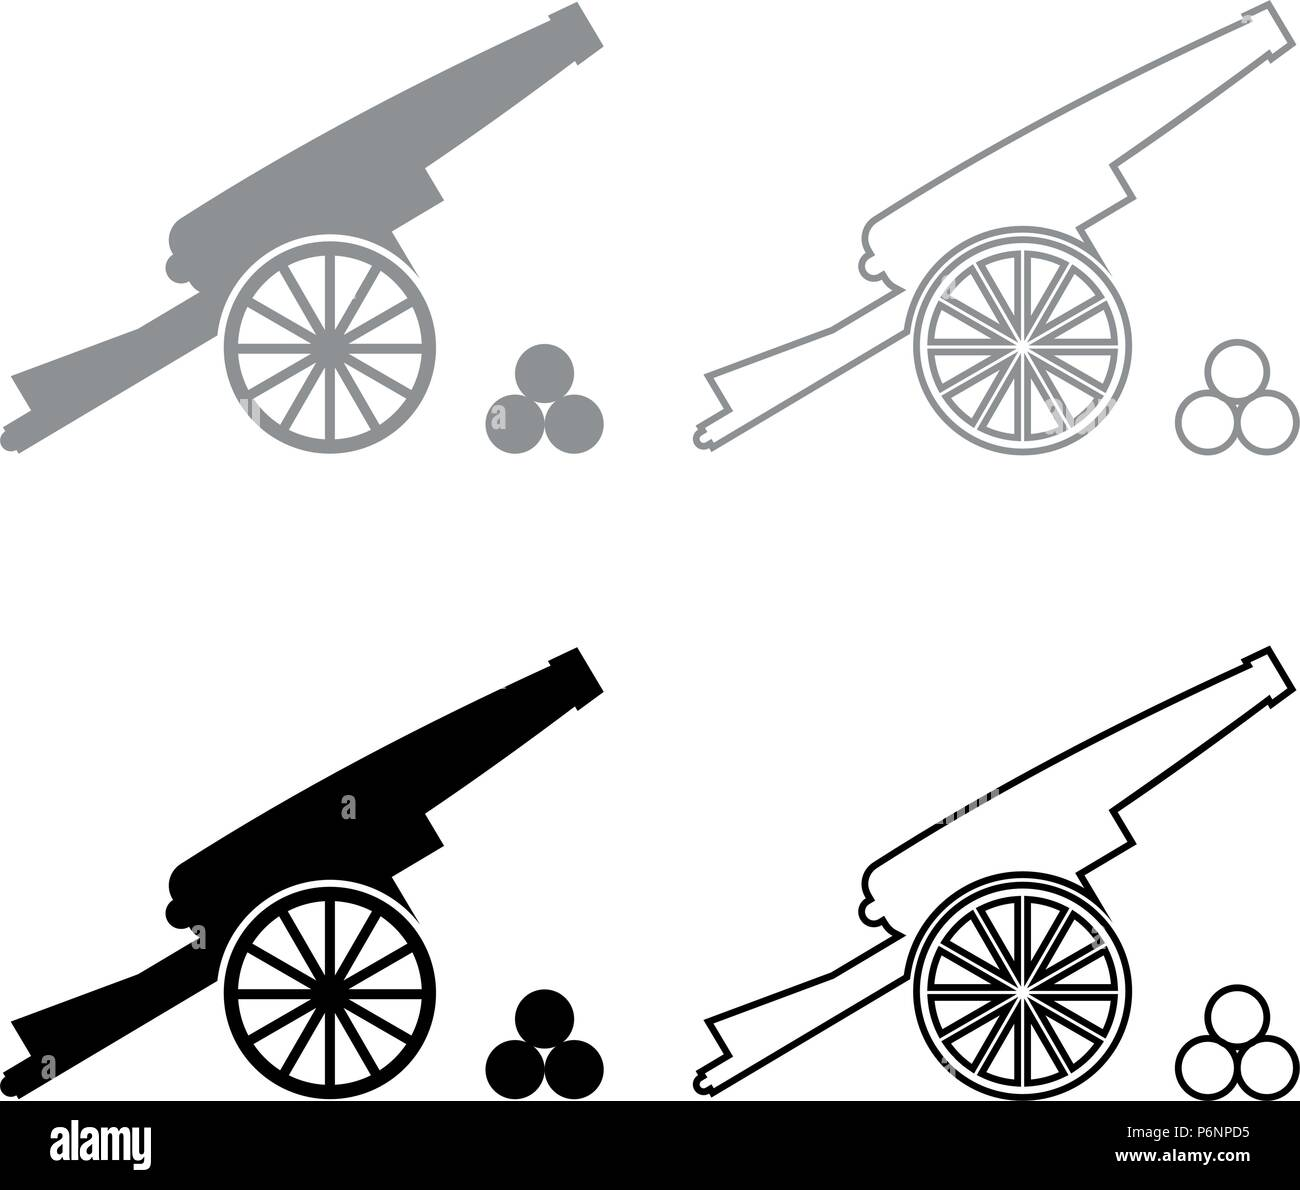 Medieval cannon firing cores icon set grey black color I flat style simple image - Stock Vector